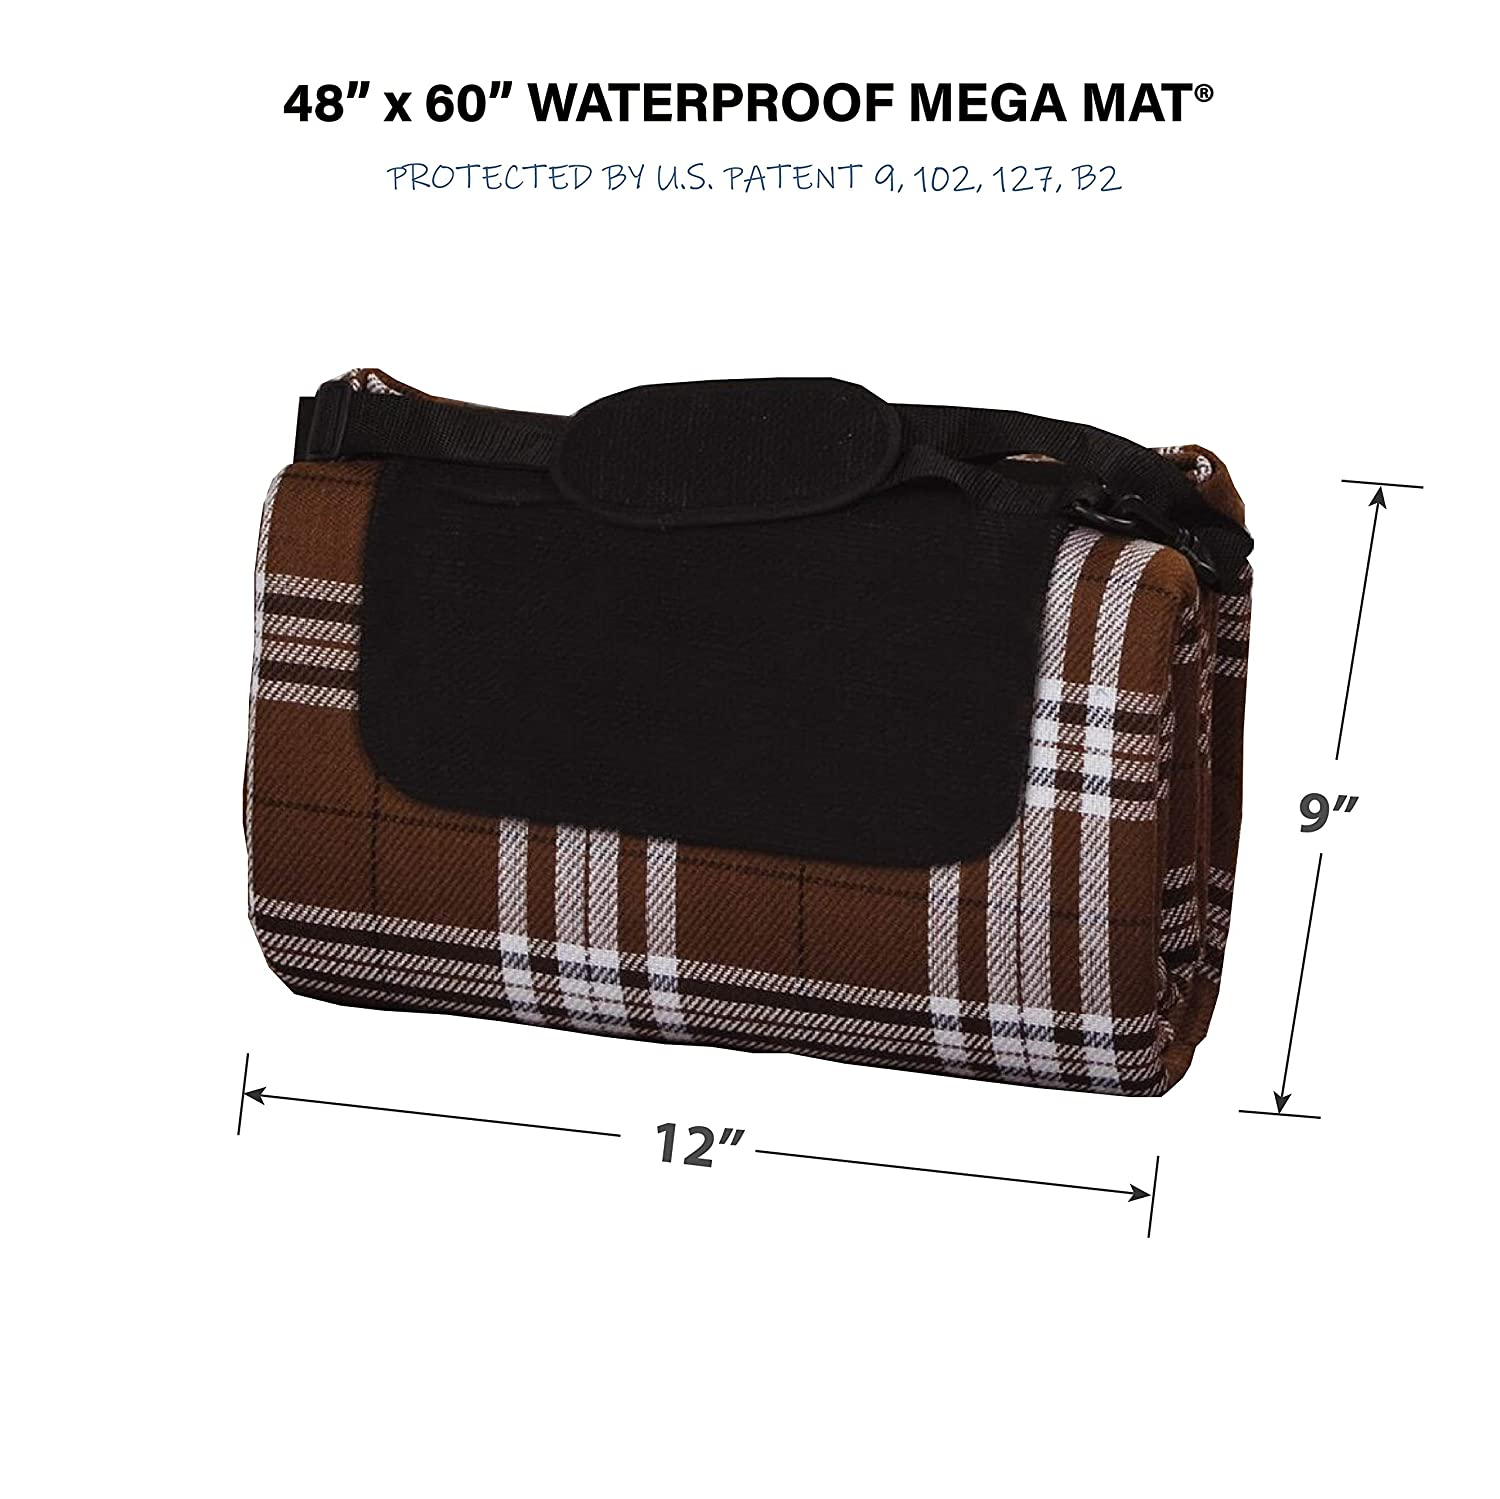 Picnic Plus Mega Mat 100 Waterproof Padded Picnic Blanket Beach Mat Camping Mat Outdoor Blanket Play Mat, Seats 2-3 Persons Plus Gear Opens to 48 X 60 Chocoholic